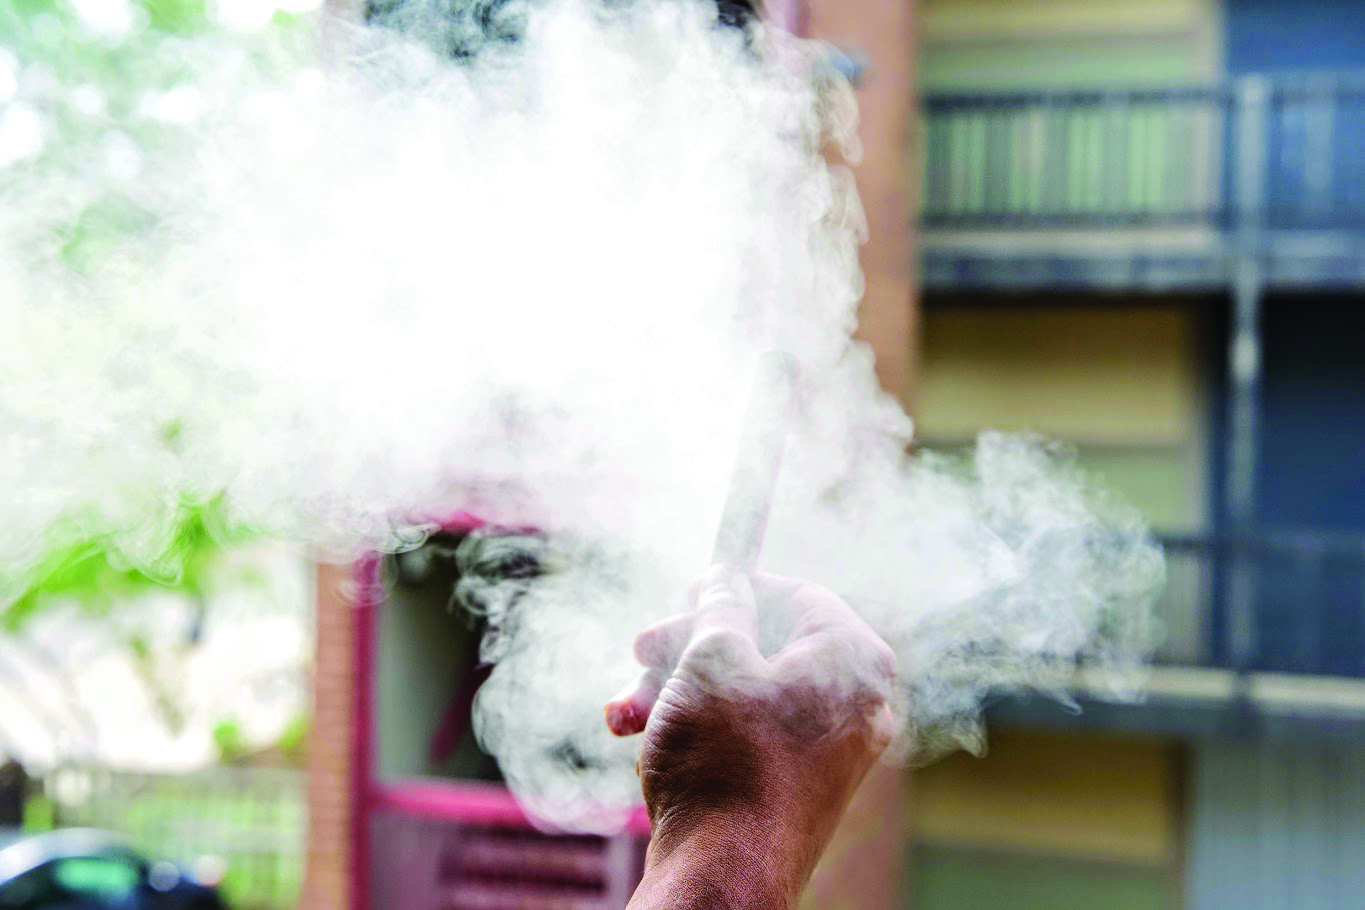 A student vapes in an apartment complex near the North Quad on Saturday. As of Aug. 26, the University is a smoke-free and tobacco-free campus.